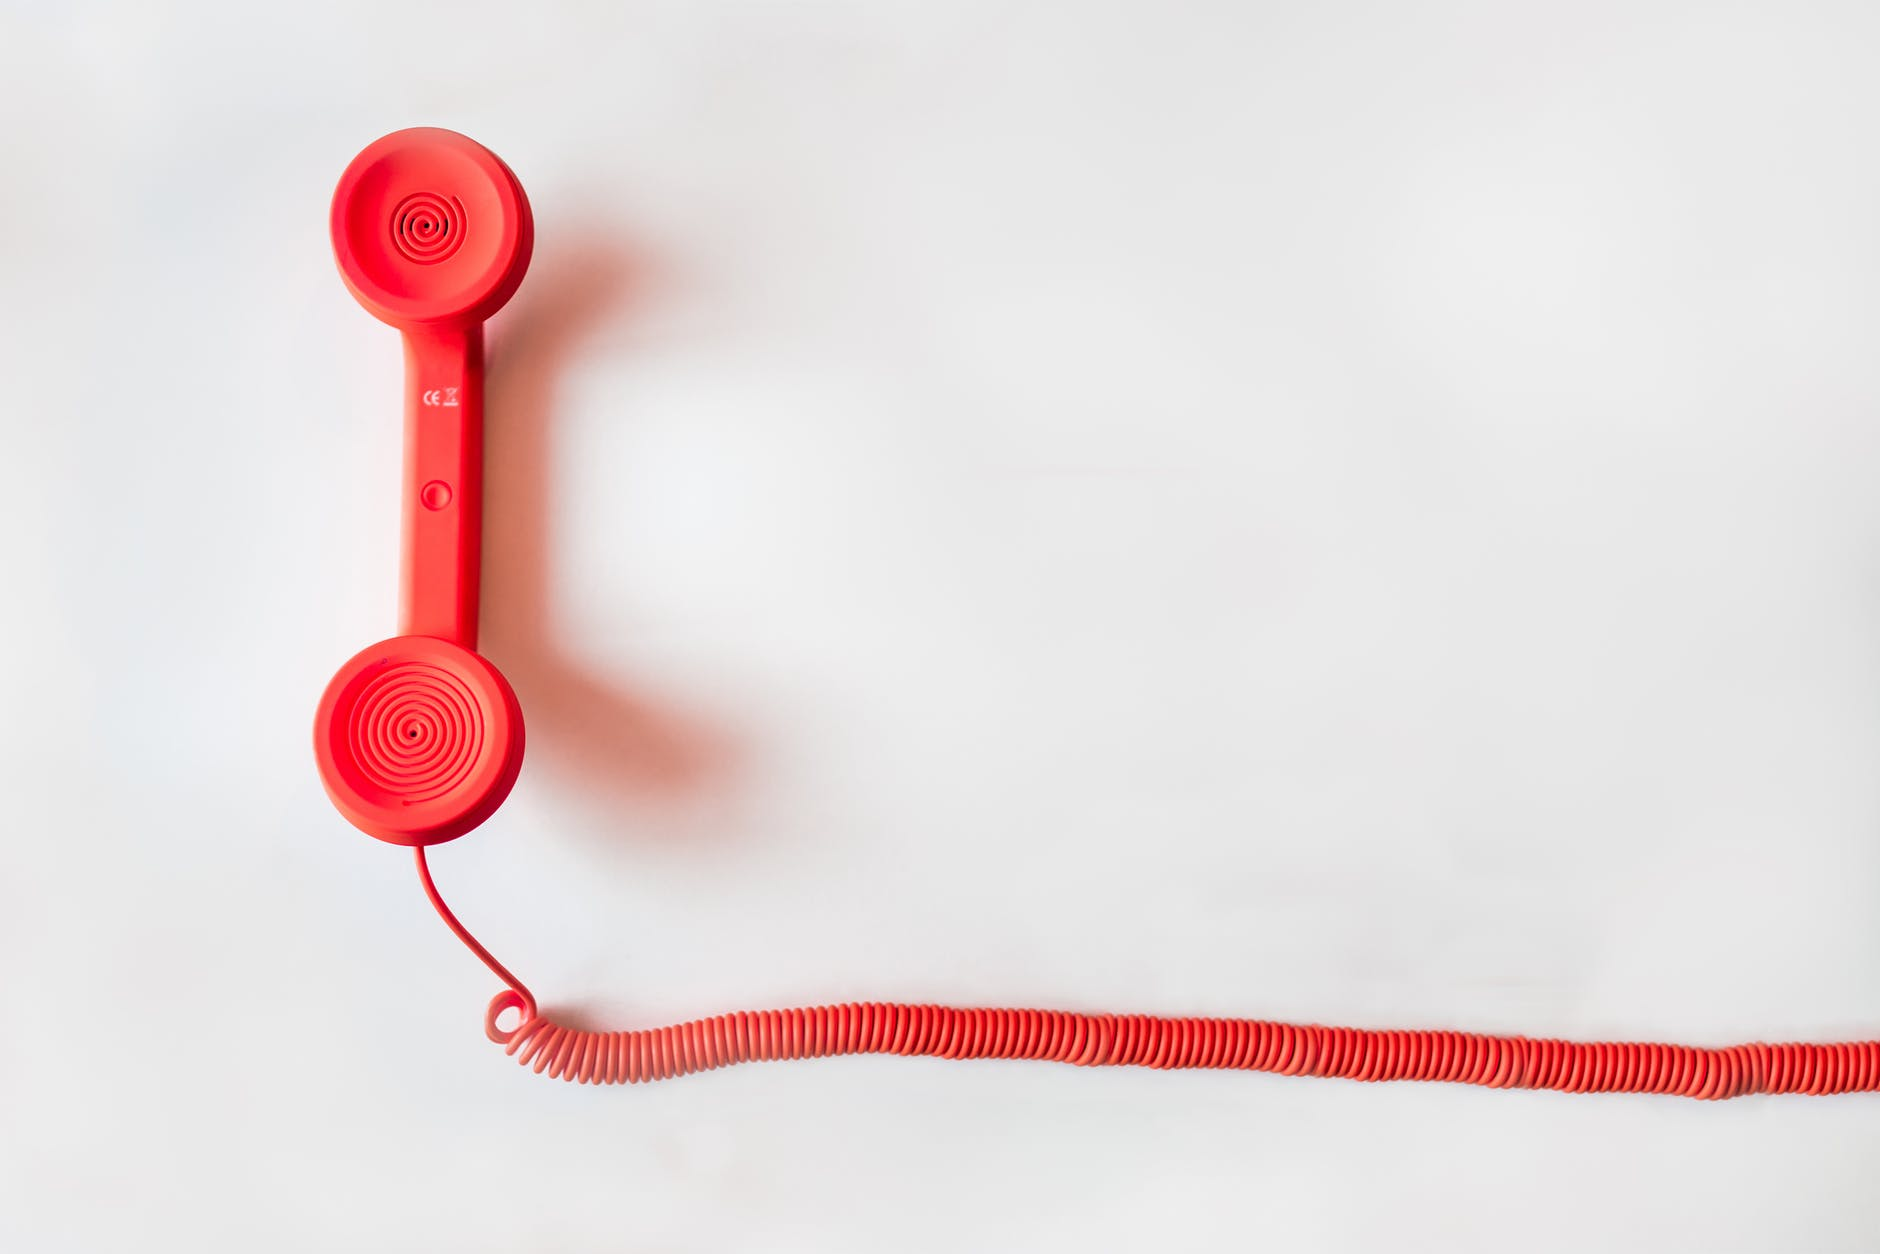 A photo of a red handheld telephone on a white background.